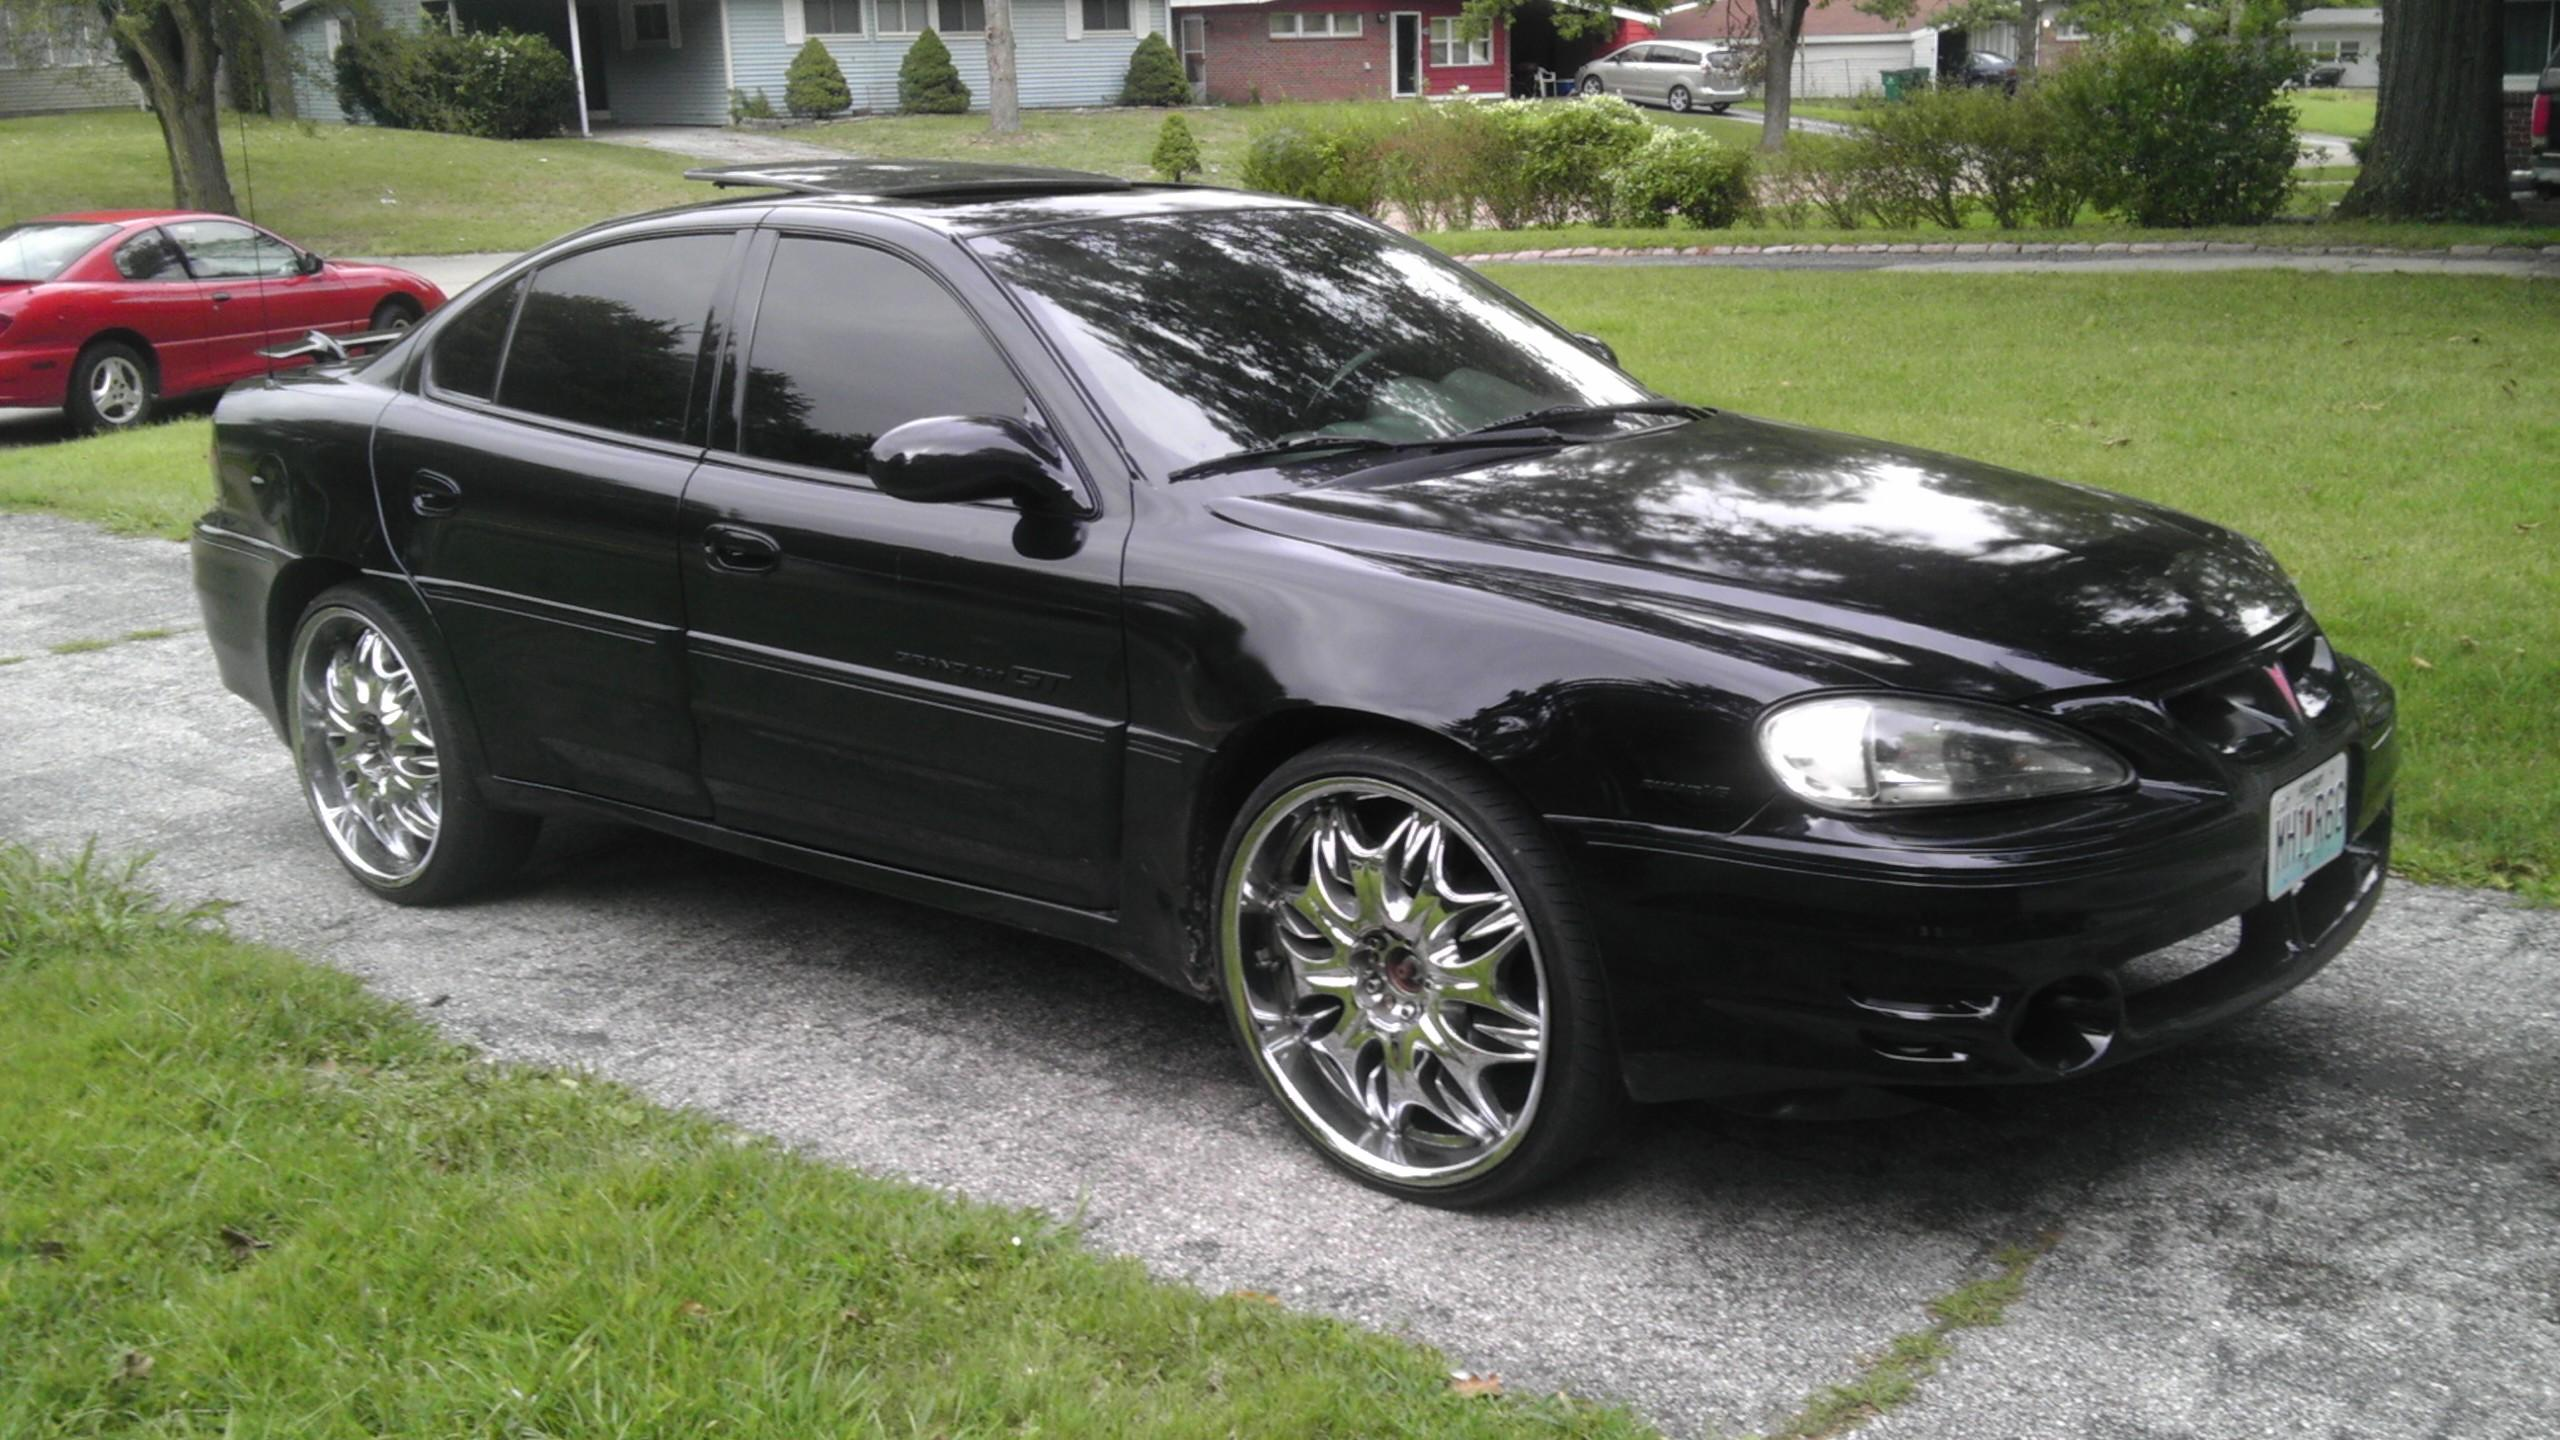 revenga 2002 pontiac grand amgt sedan 4d specs photos. Black Bedroom Furniture Sets. Home Design Ideas